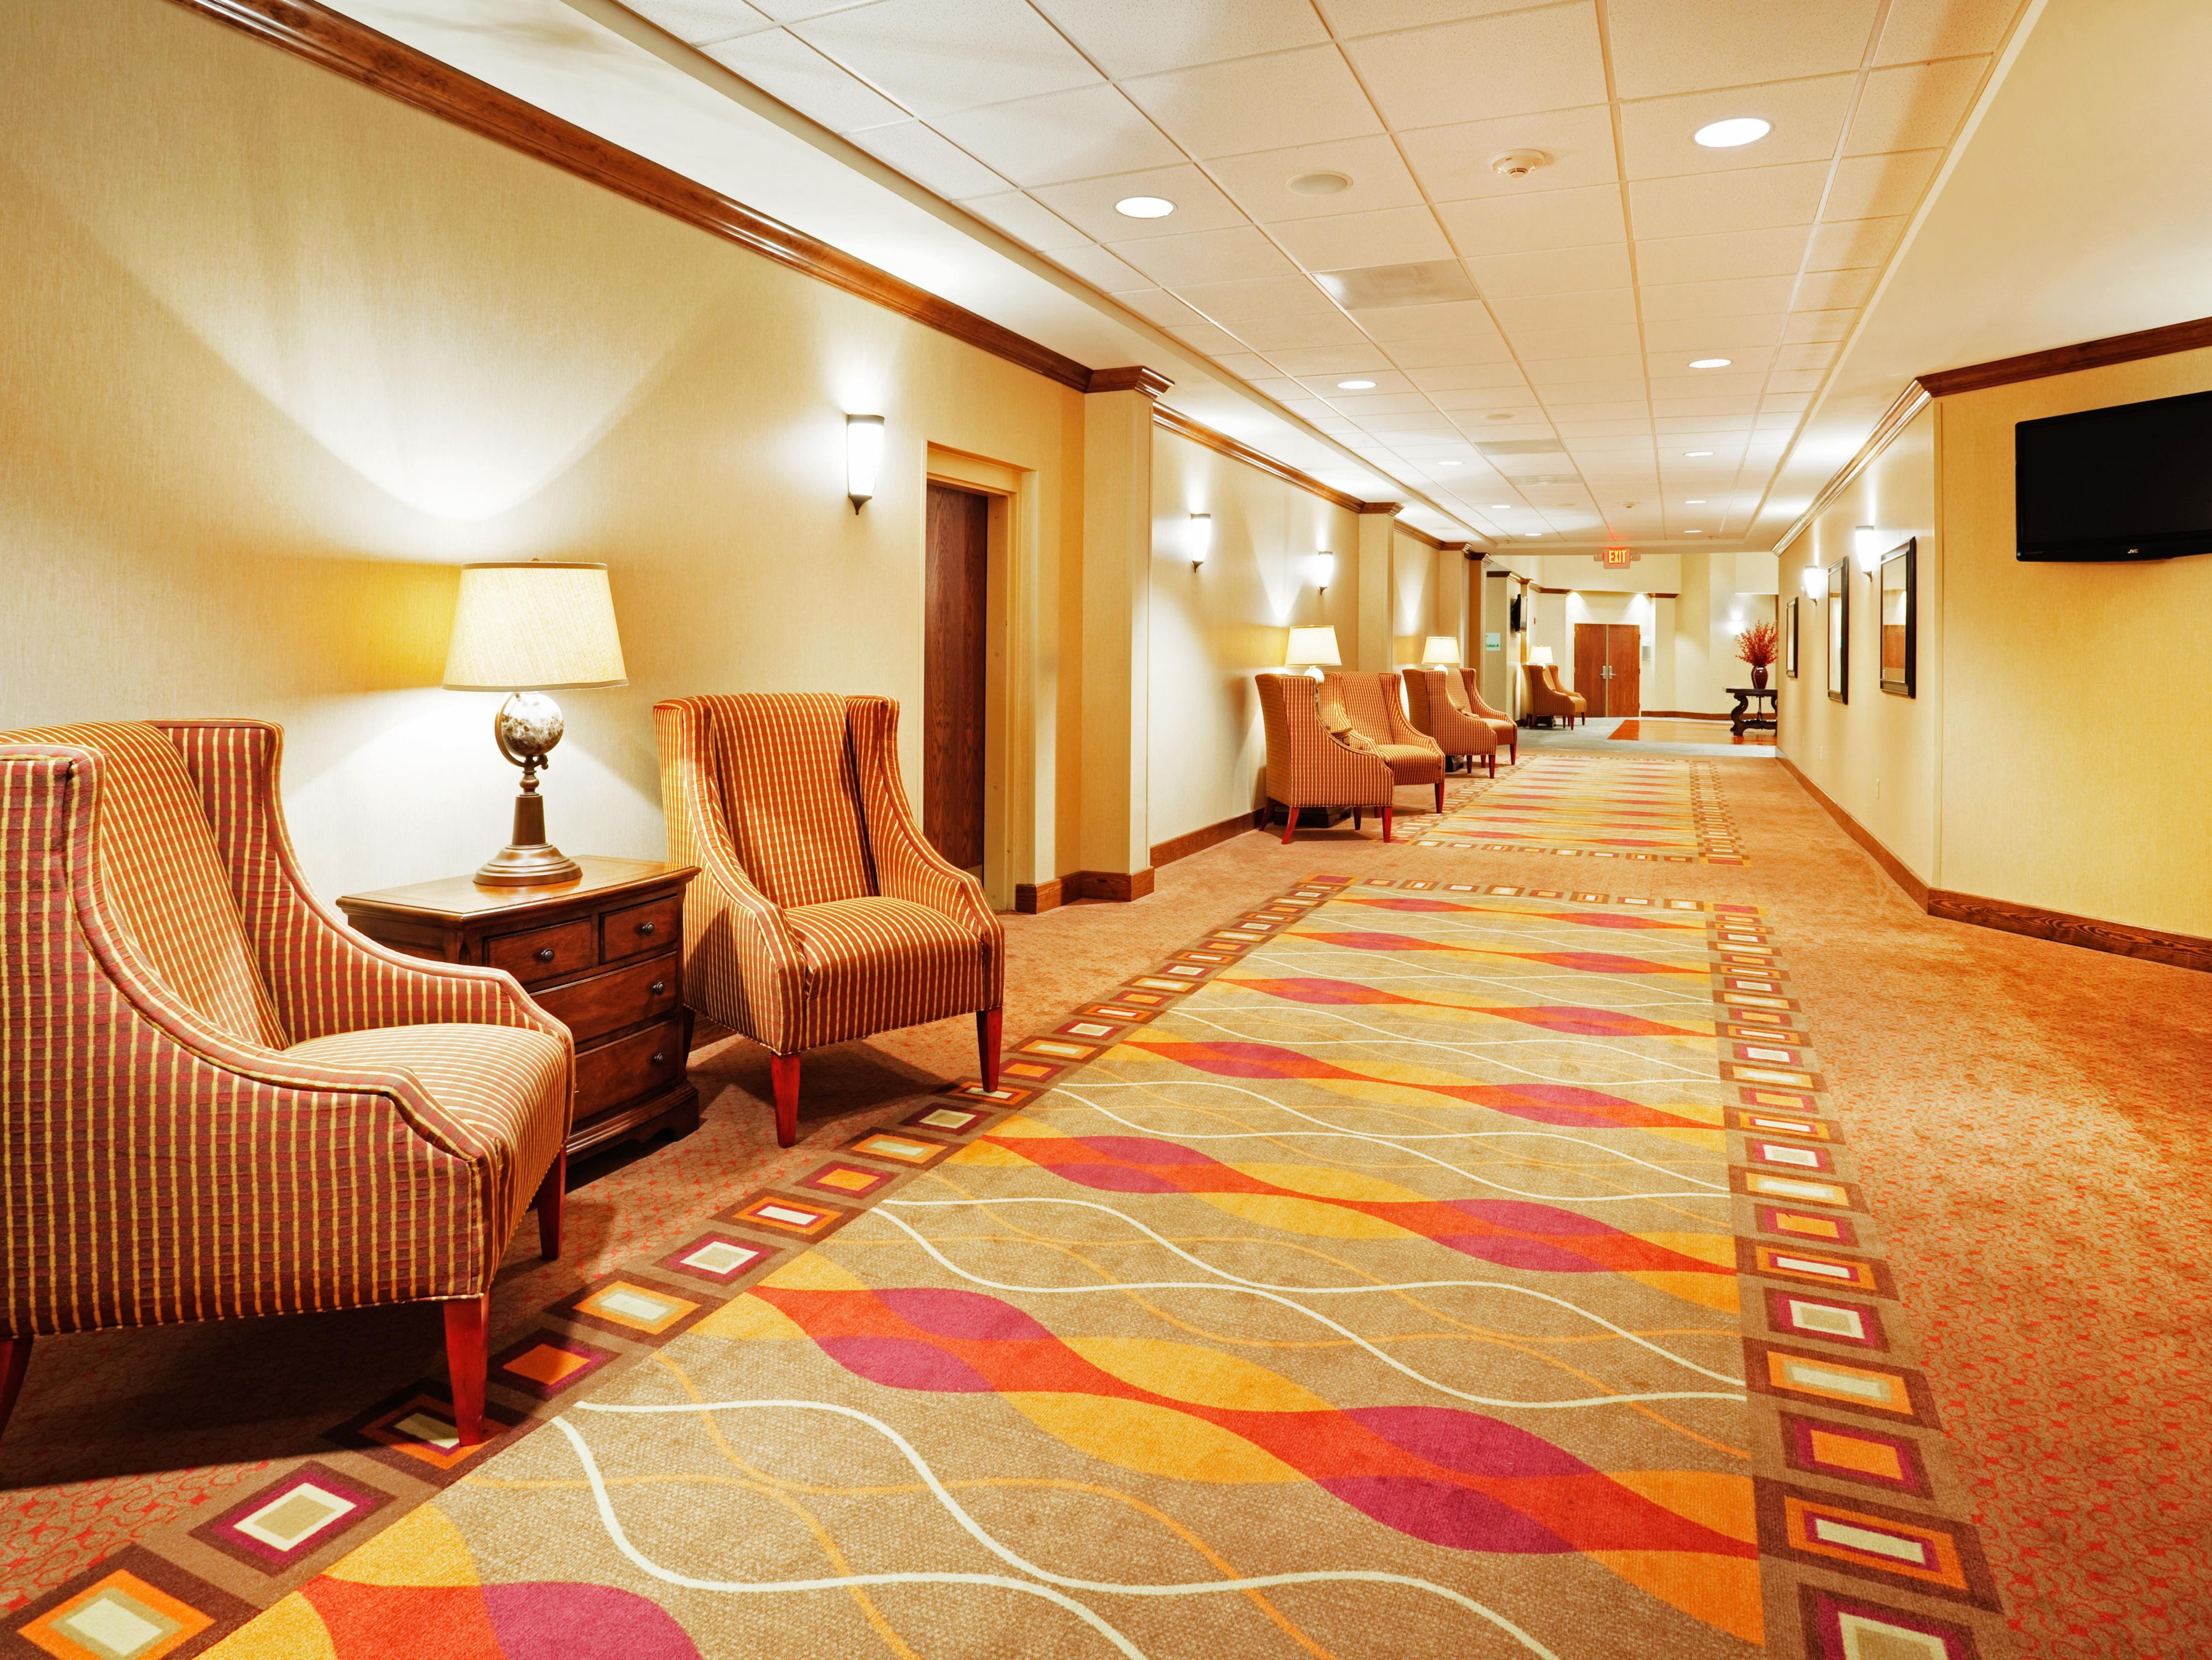 Spacious Pre-function areas accessed from hotel lobby